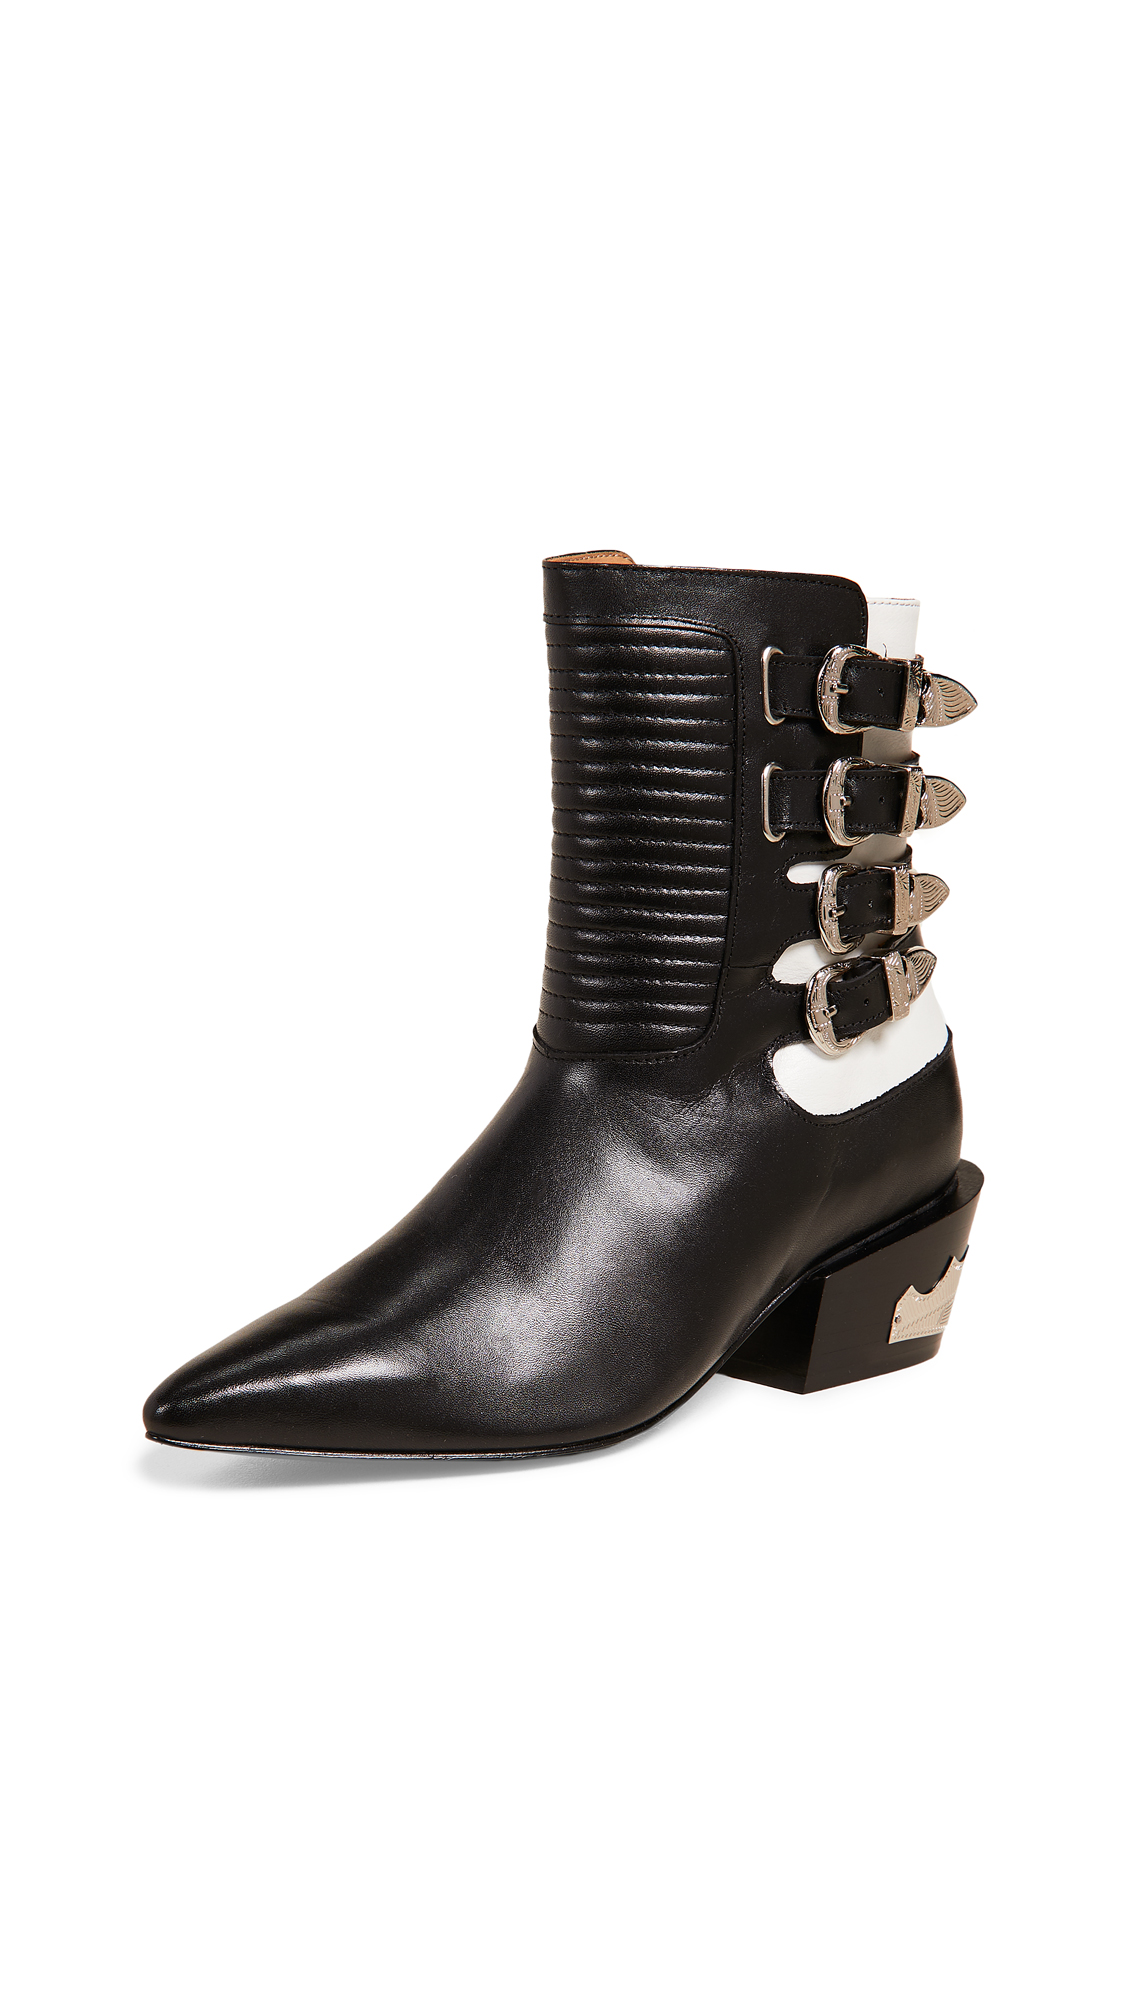 Toga Pulla Multi Buckle Boots - Black/White